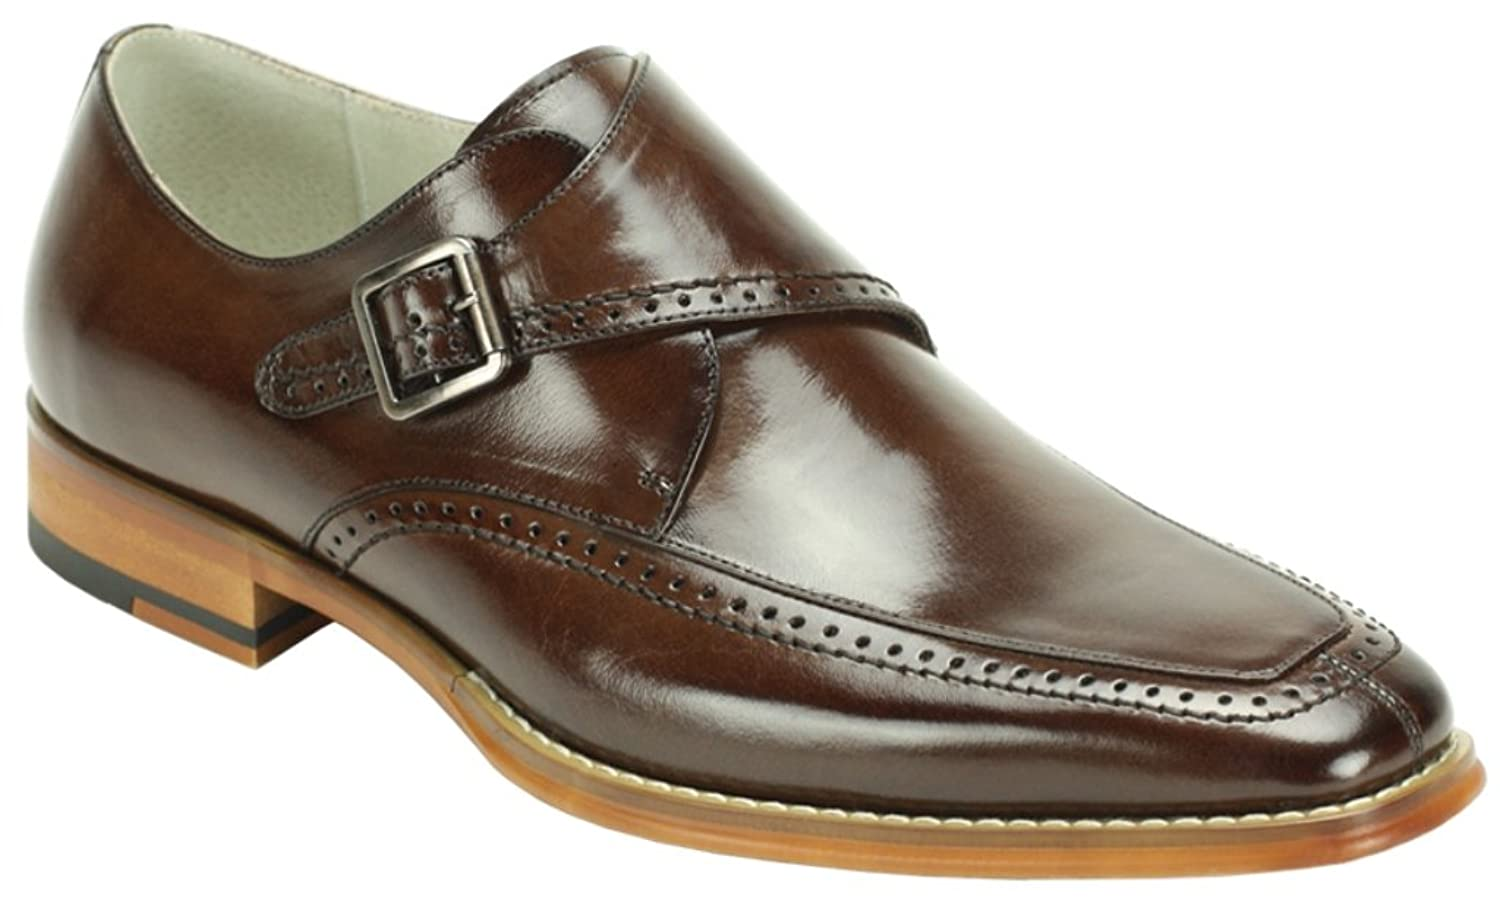 7e83f97cb8ef new Men s Dress Shoes Moc Toe Monk Strap Chocolate Brown Leather AMATO By  GIOVANNI